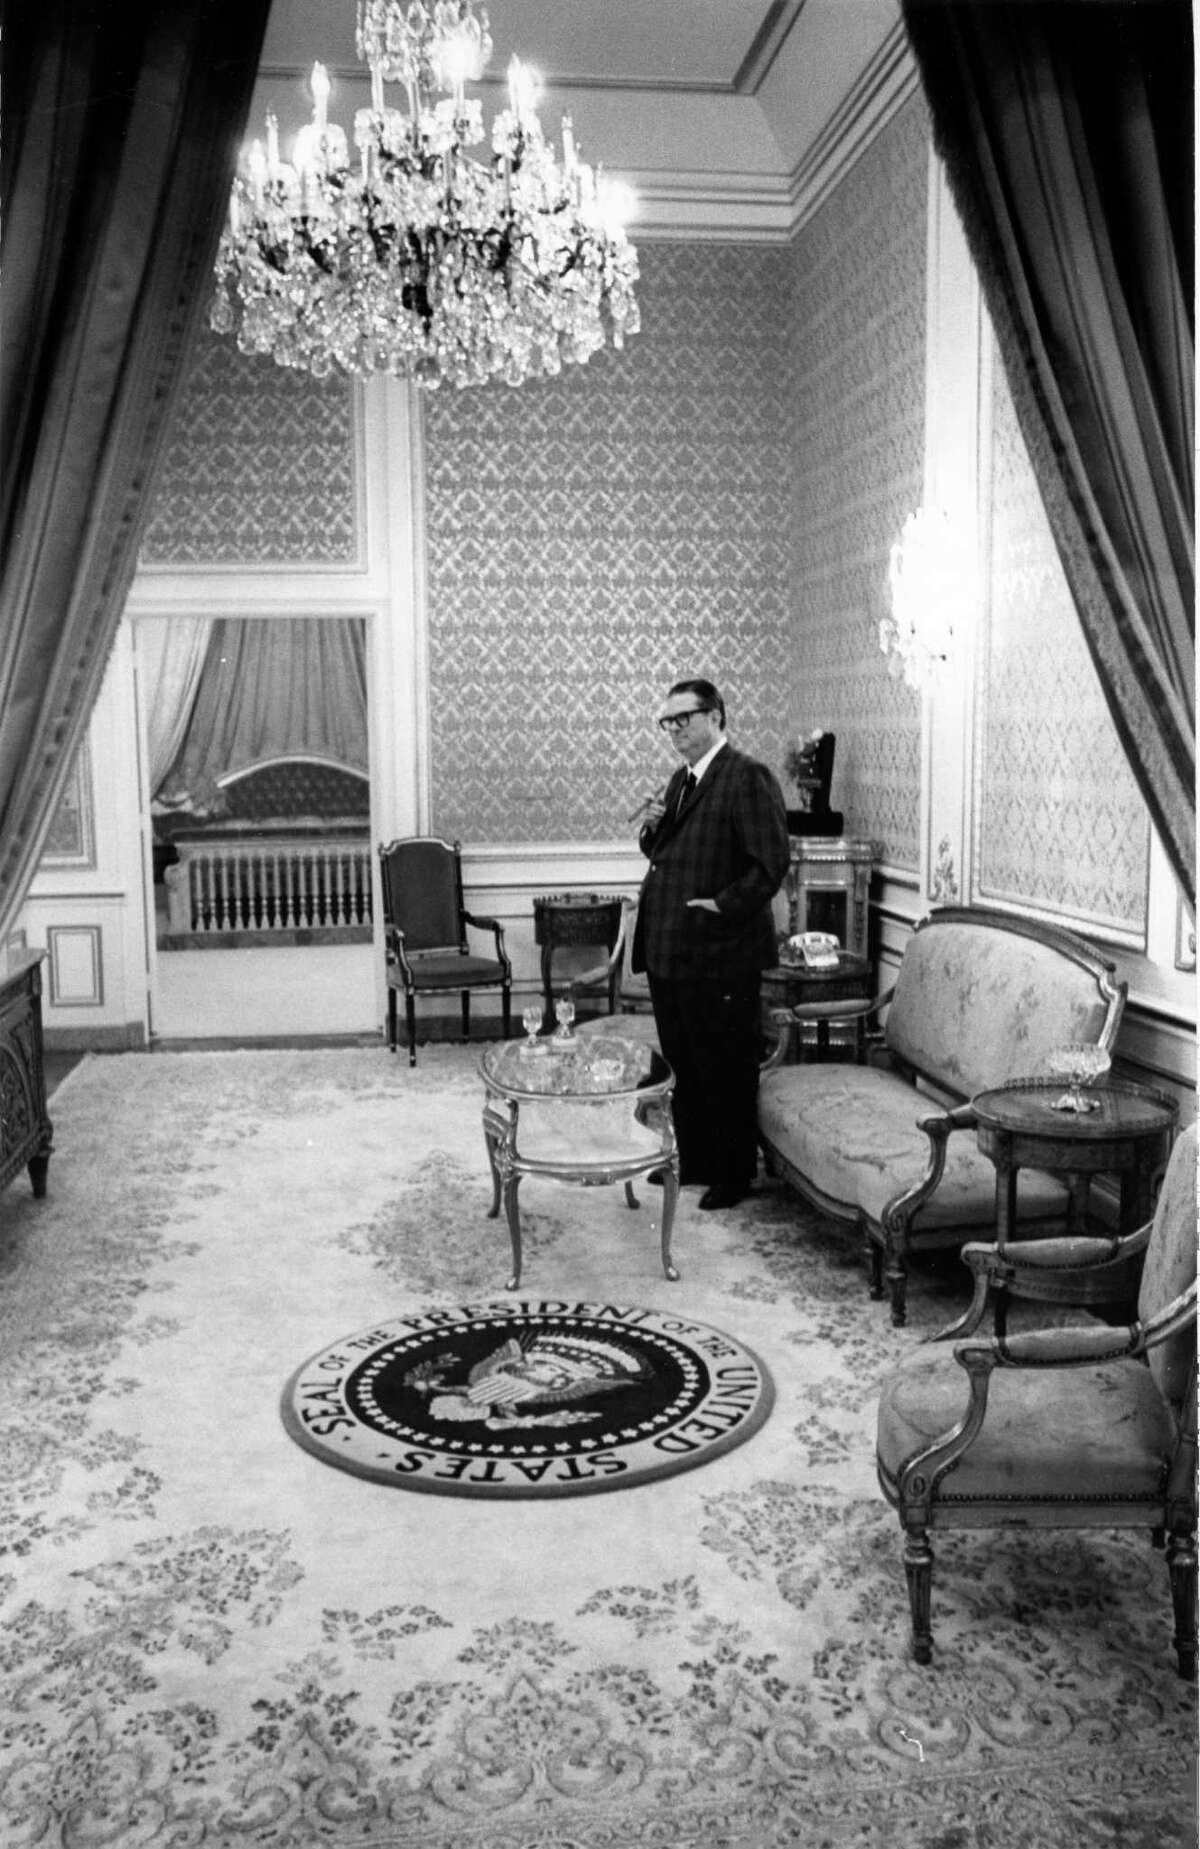 09/1968 - Roy Hofheinz stands in the 20-foot-ceilinged Presidential Suite at the Astrodome. The suite was across the elevator from Hofheinz's own living quarters and had a rug bearing the Presidential seal. Baths were trimed in purple velvet and toilet handles were made of gold. The suite, without a view, was built behind the scoreboard for security reasons.